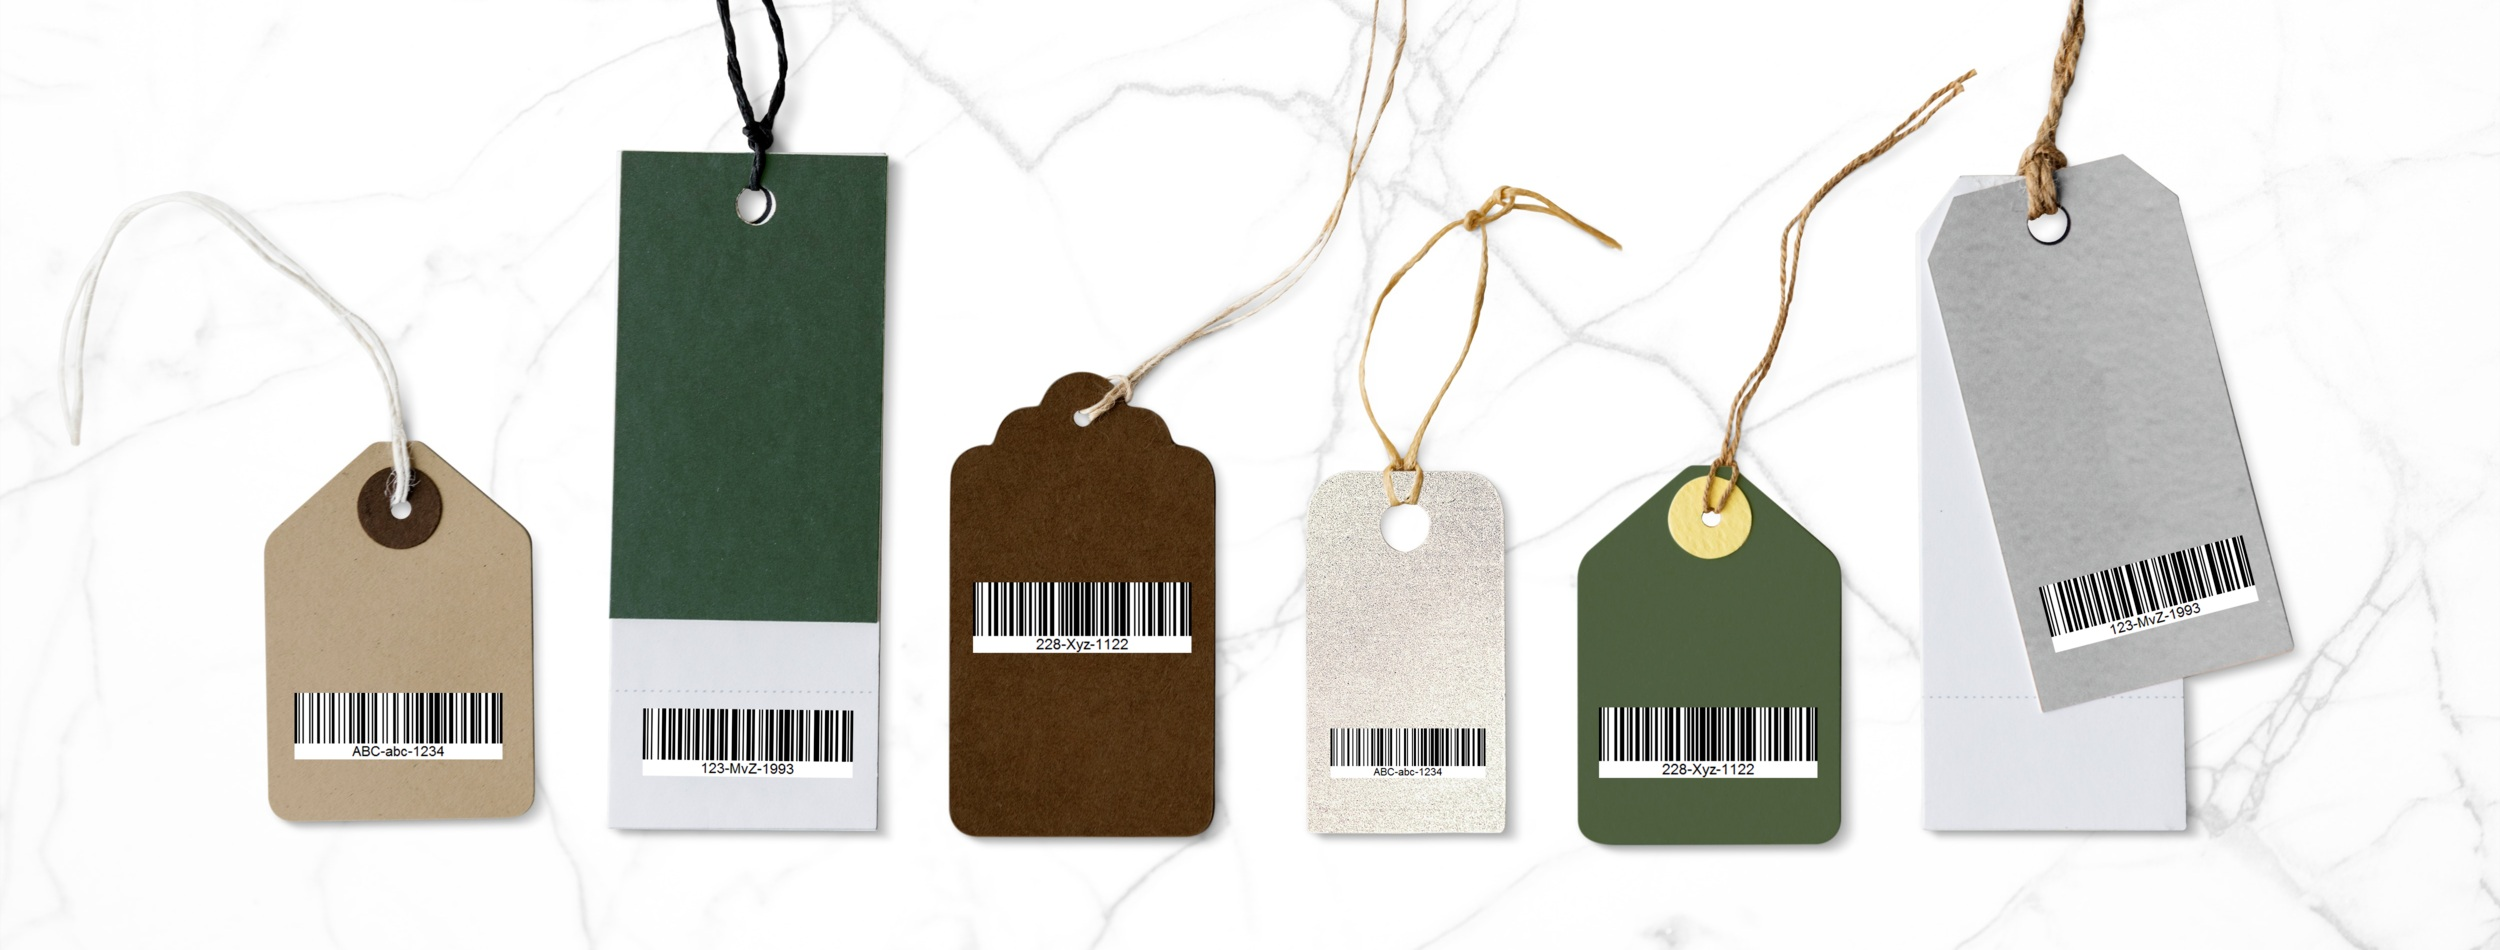 Mobile forms barcode scanning helps your team work faster and more accurately